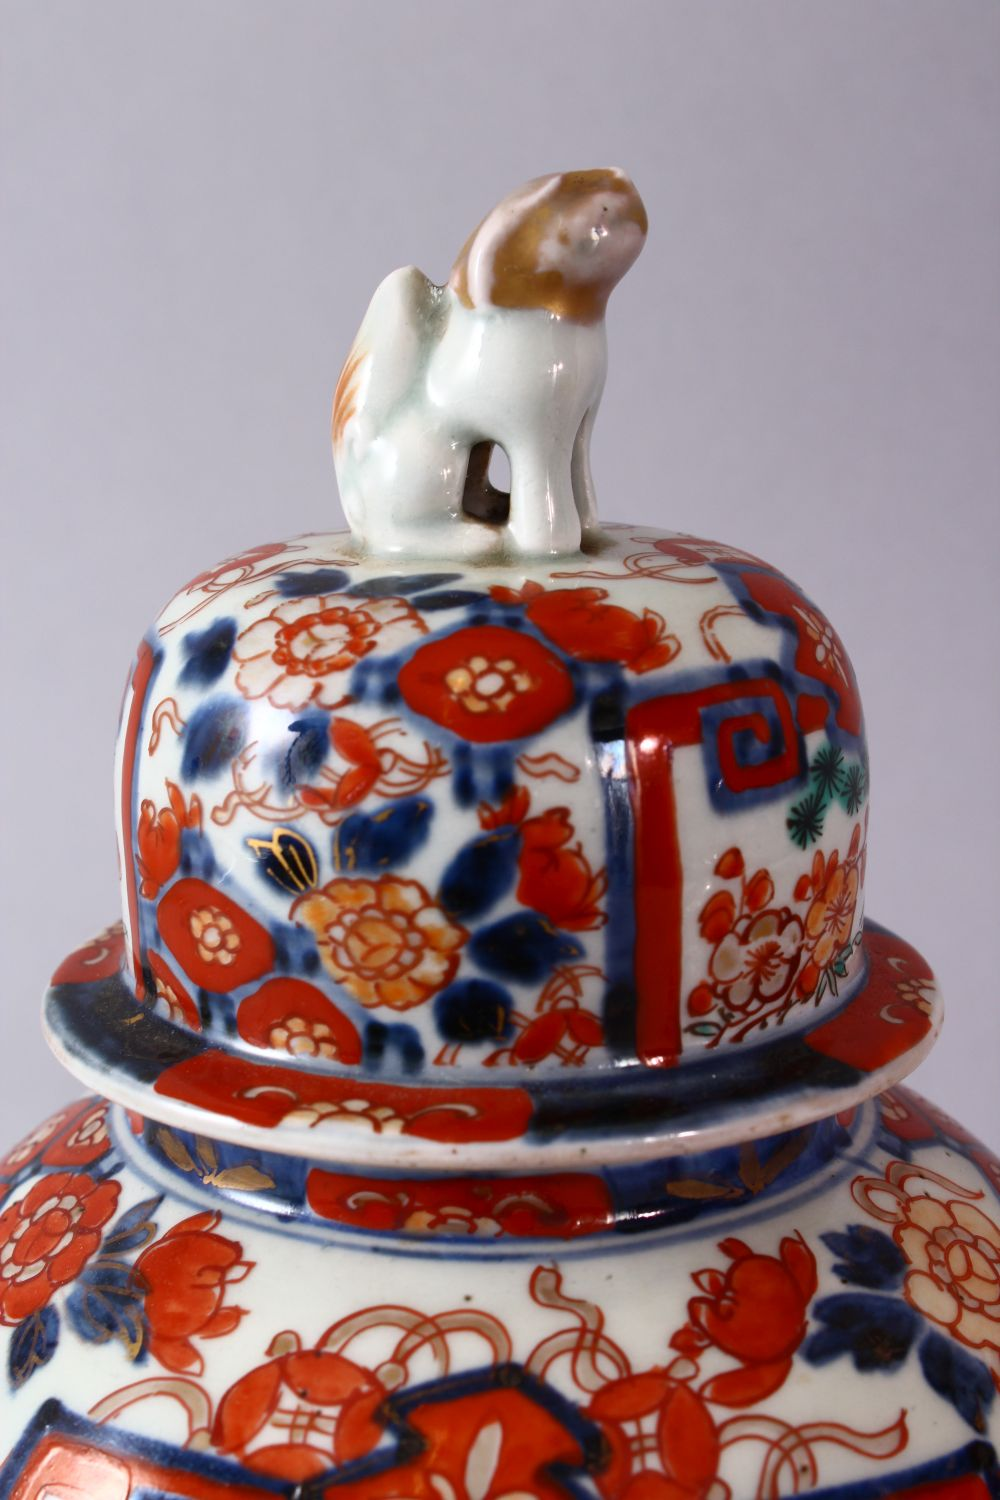 A PAIR OF MEIJI PERIOD IMARI VASES AND COVERS, with kylin finials, overall 30cm high. - Image 3 of 10